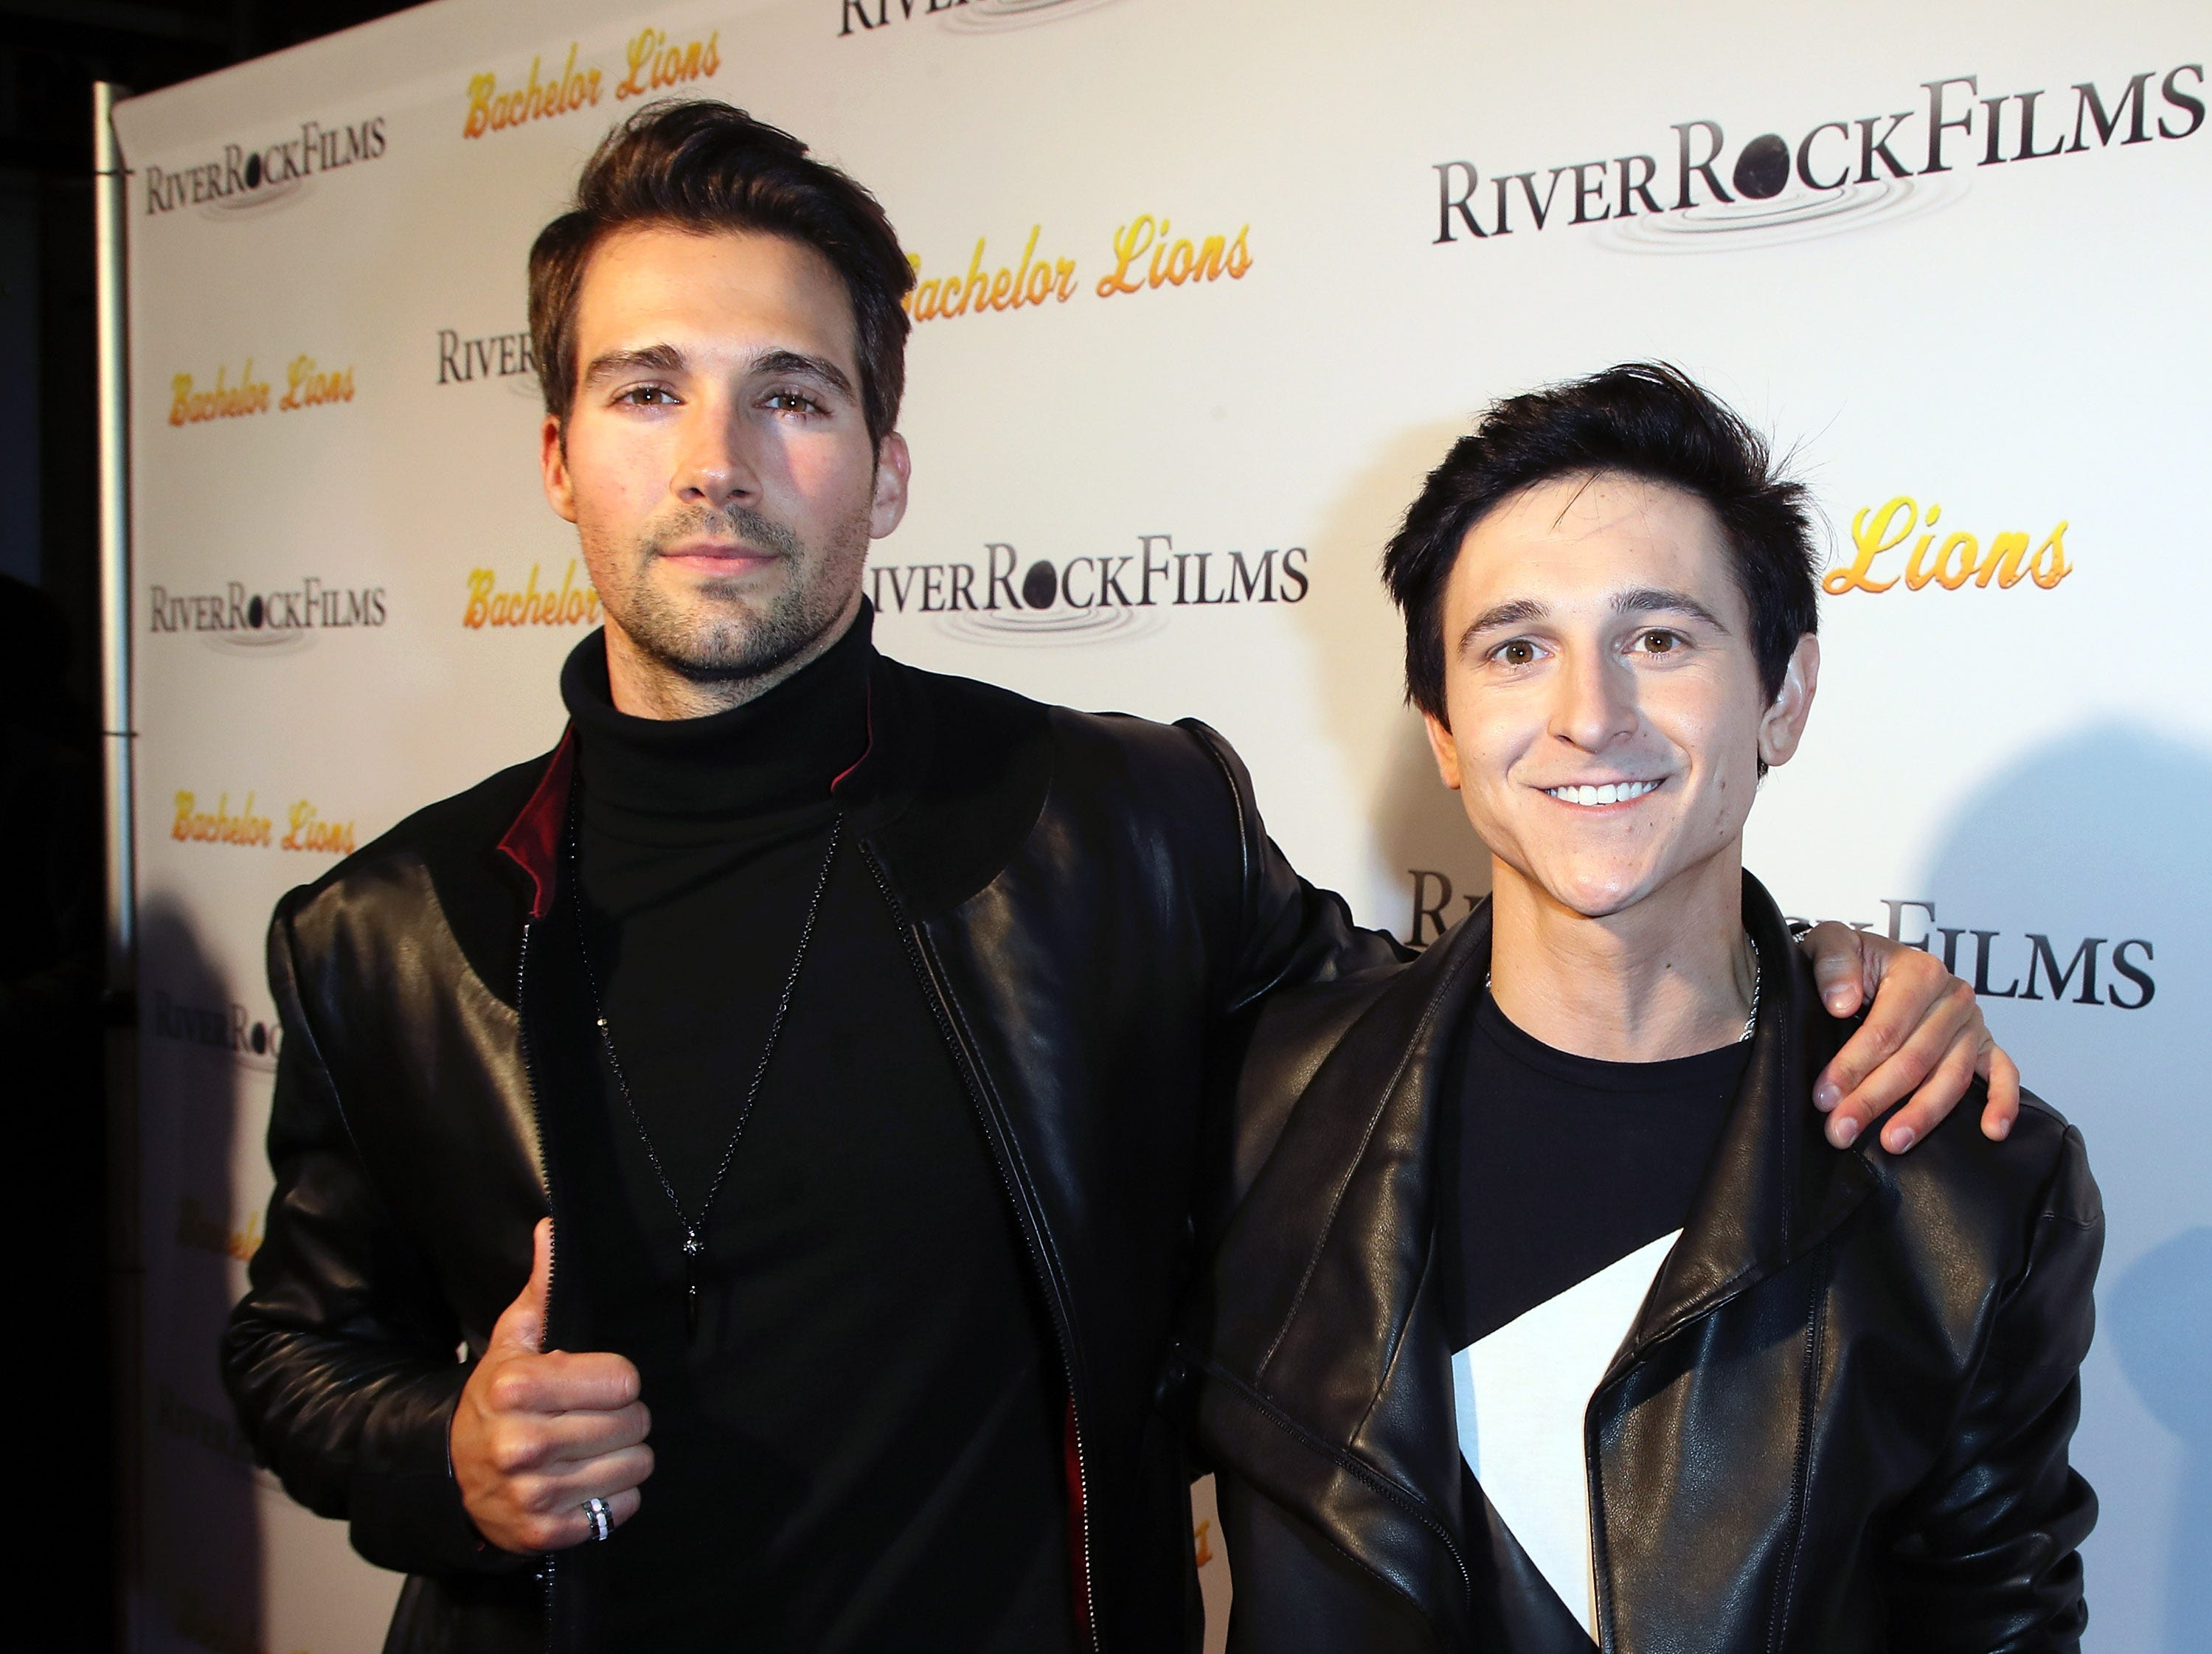 "HOLLYWOOD, CA - JANUARY 09:  Actors James Maslow (L) and  Mitchel Musso attend the premiere of ""Bachelor Lions""  at ArcLight Hollywood on January 9, 2018 in Hollywood, California.  (Photo by David Livingston/Getty Images) ORG XMIT: 775099241 ORIG FILE ID: 903170128"